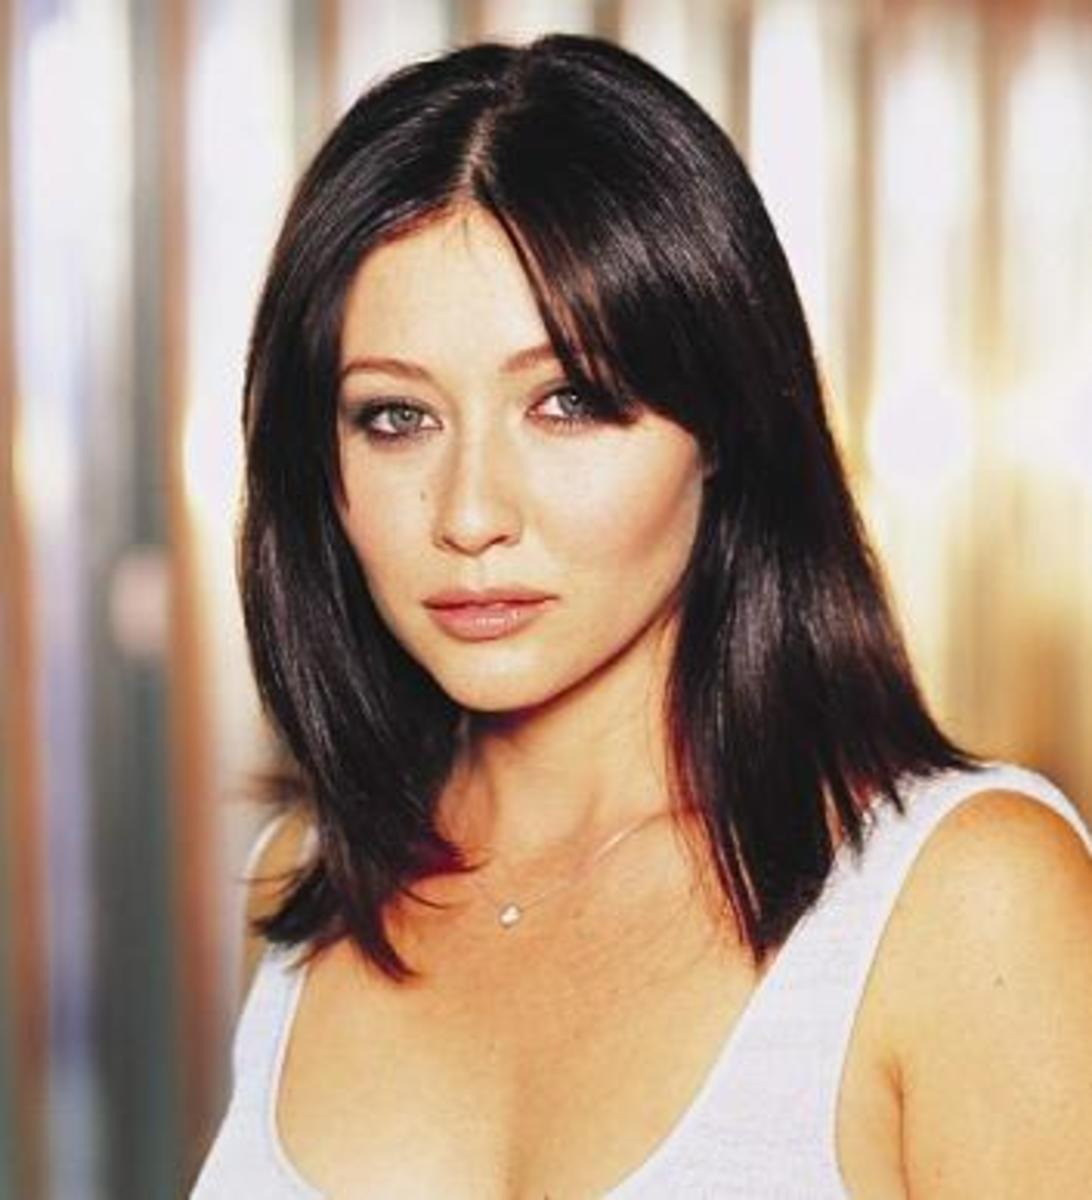 Prue Halliwell's Top Ten Fashion Moments on